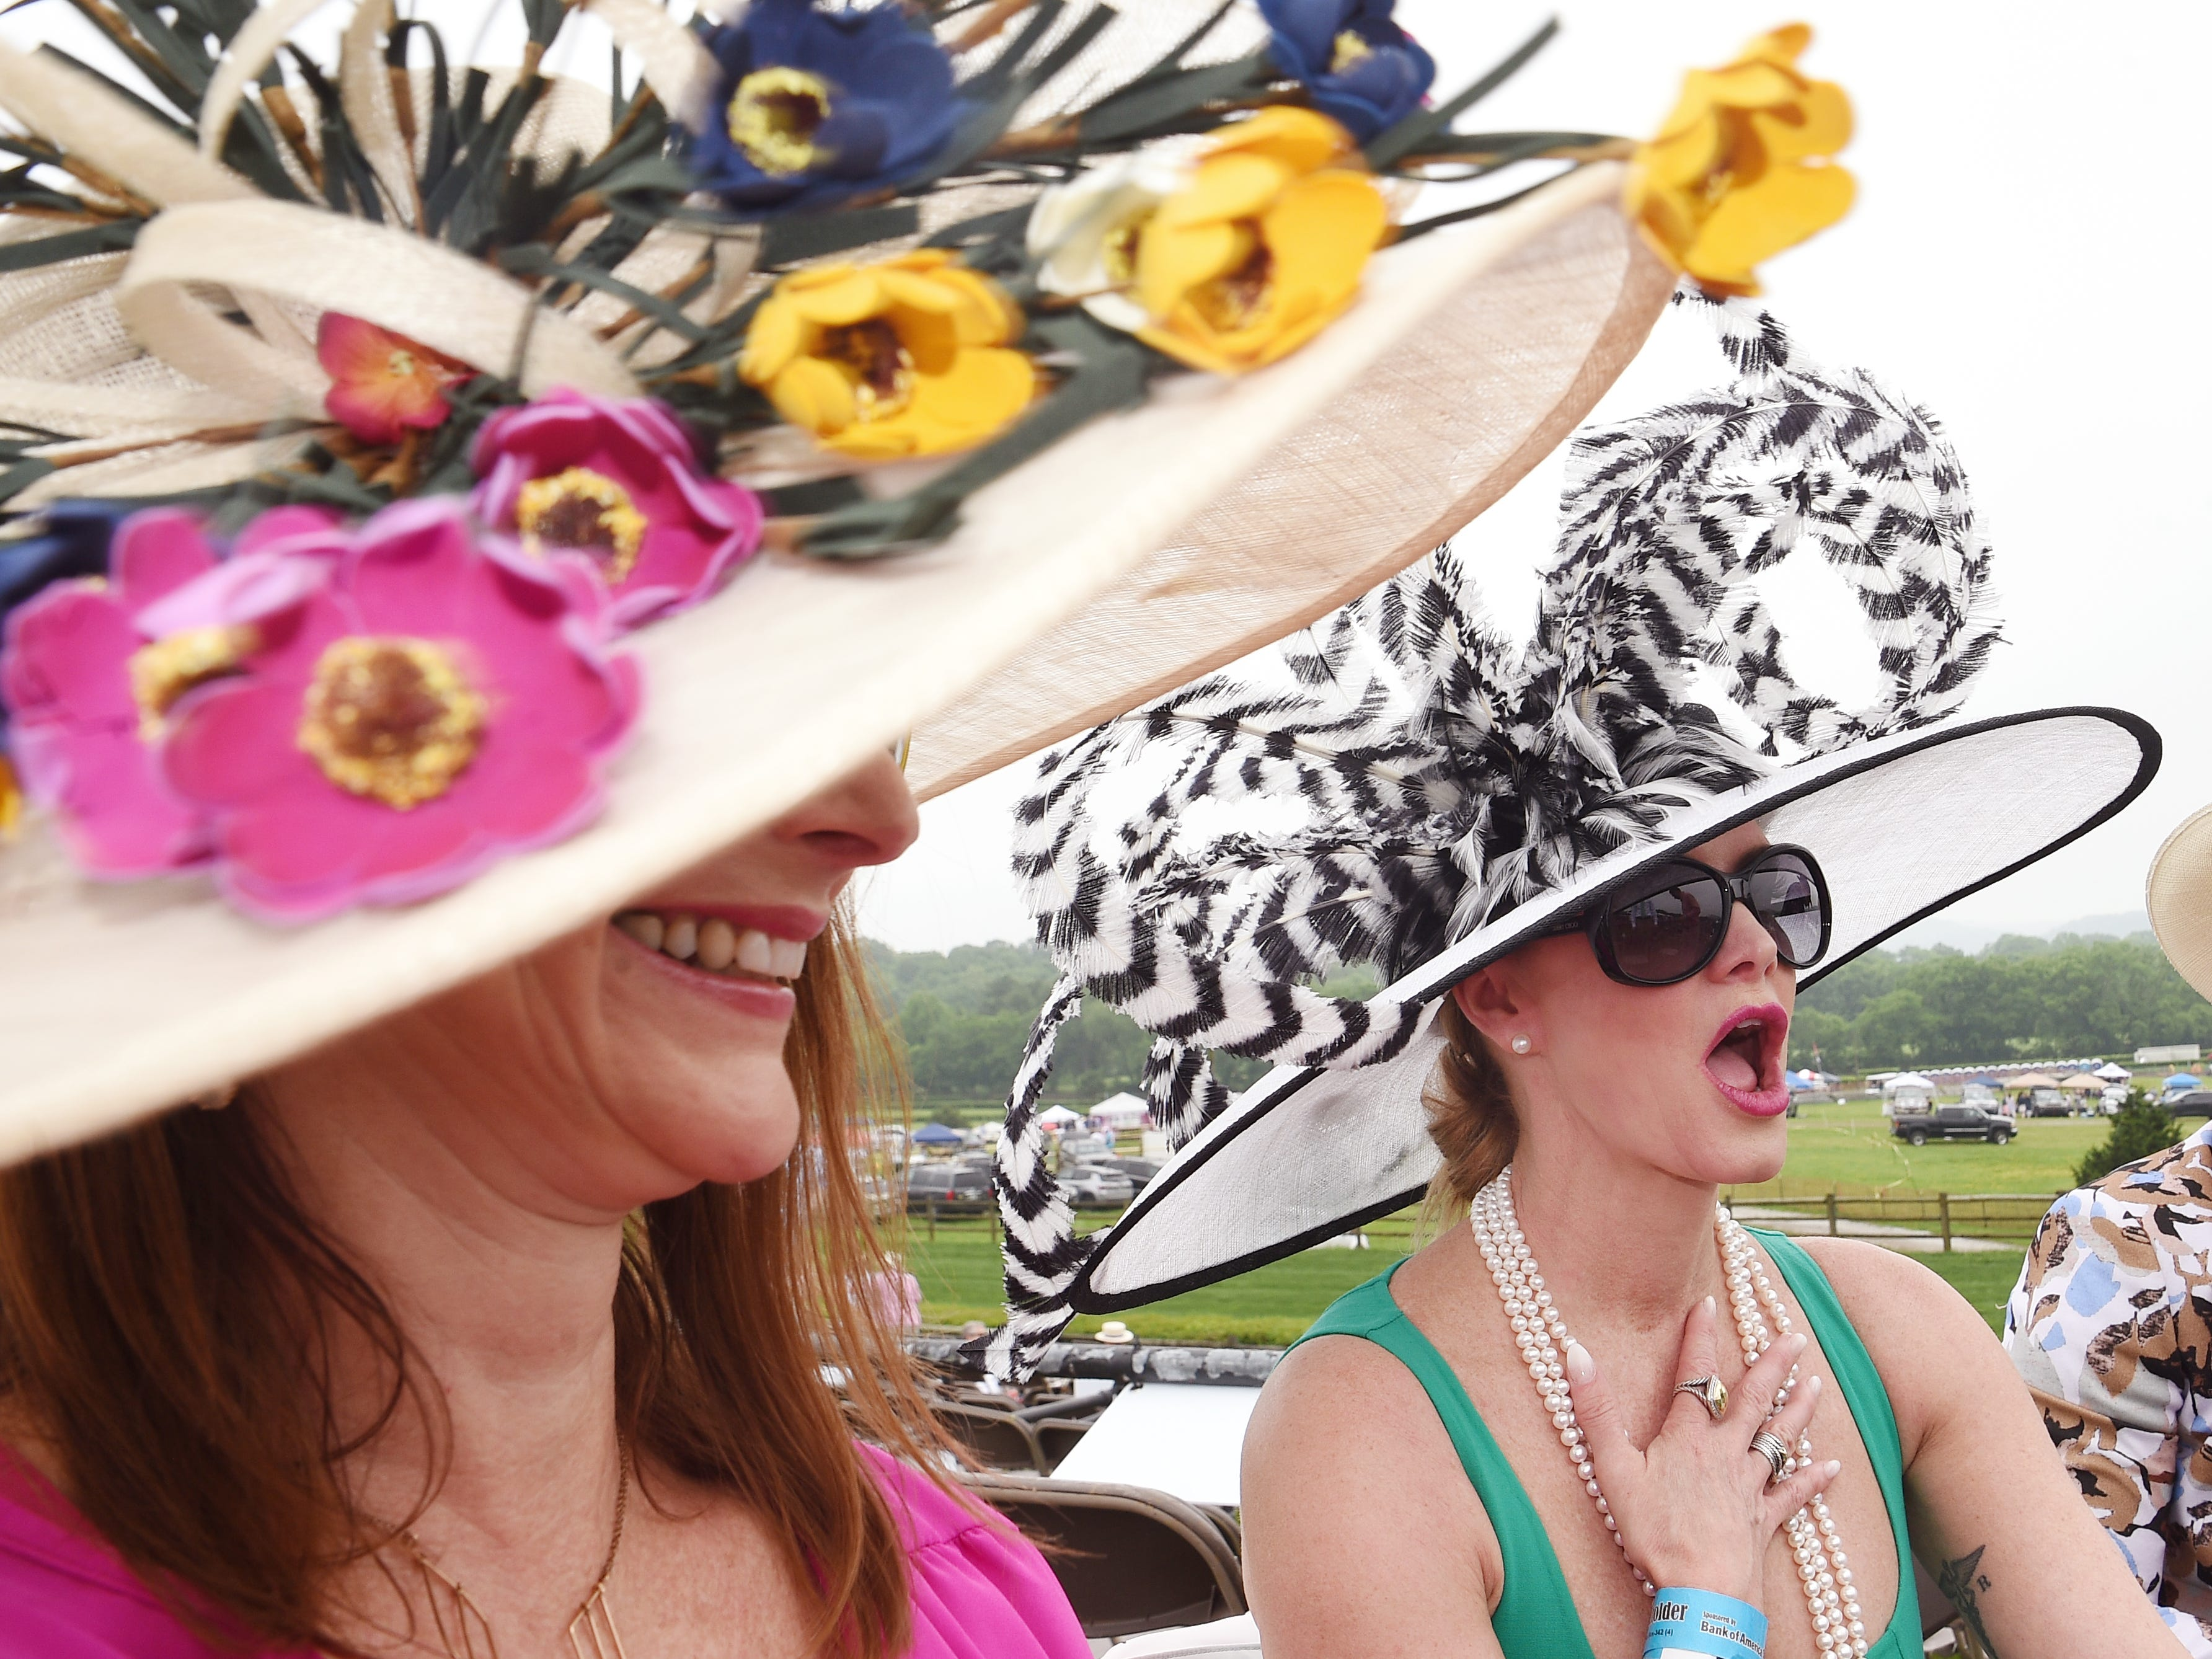 Rebecca Lines and Katherine Morgan wait for the 78th Iroquois Steeplechase races to begin at Percy Warner Park in Nashville on Saturday May 11, 2019.